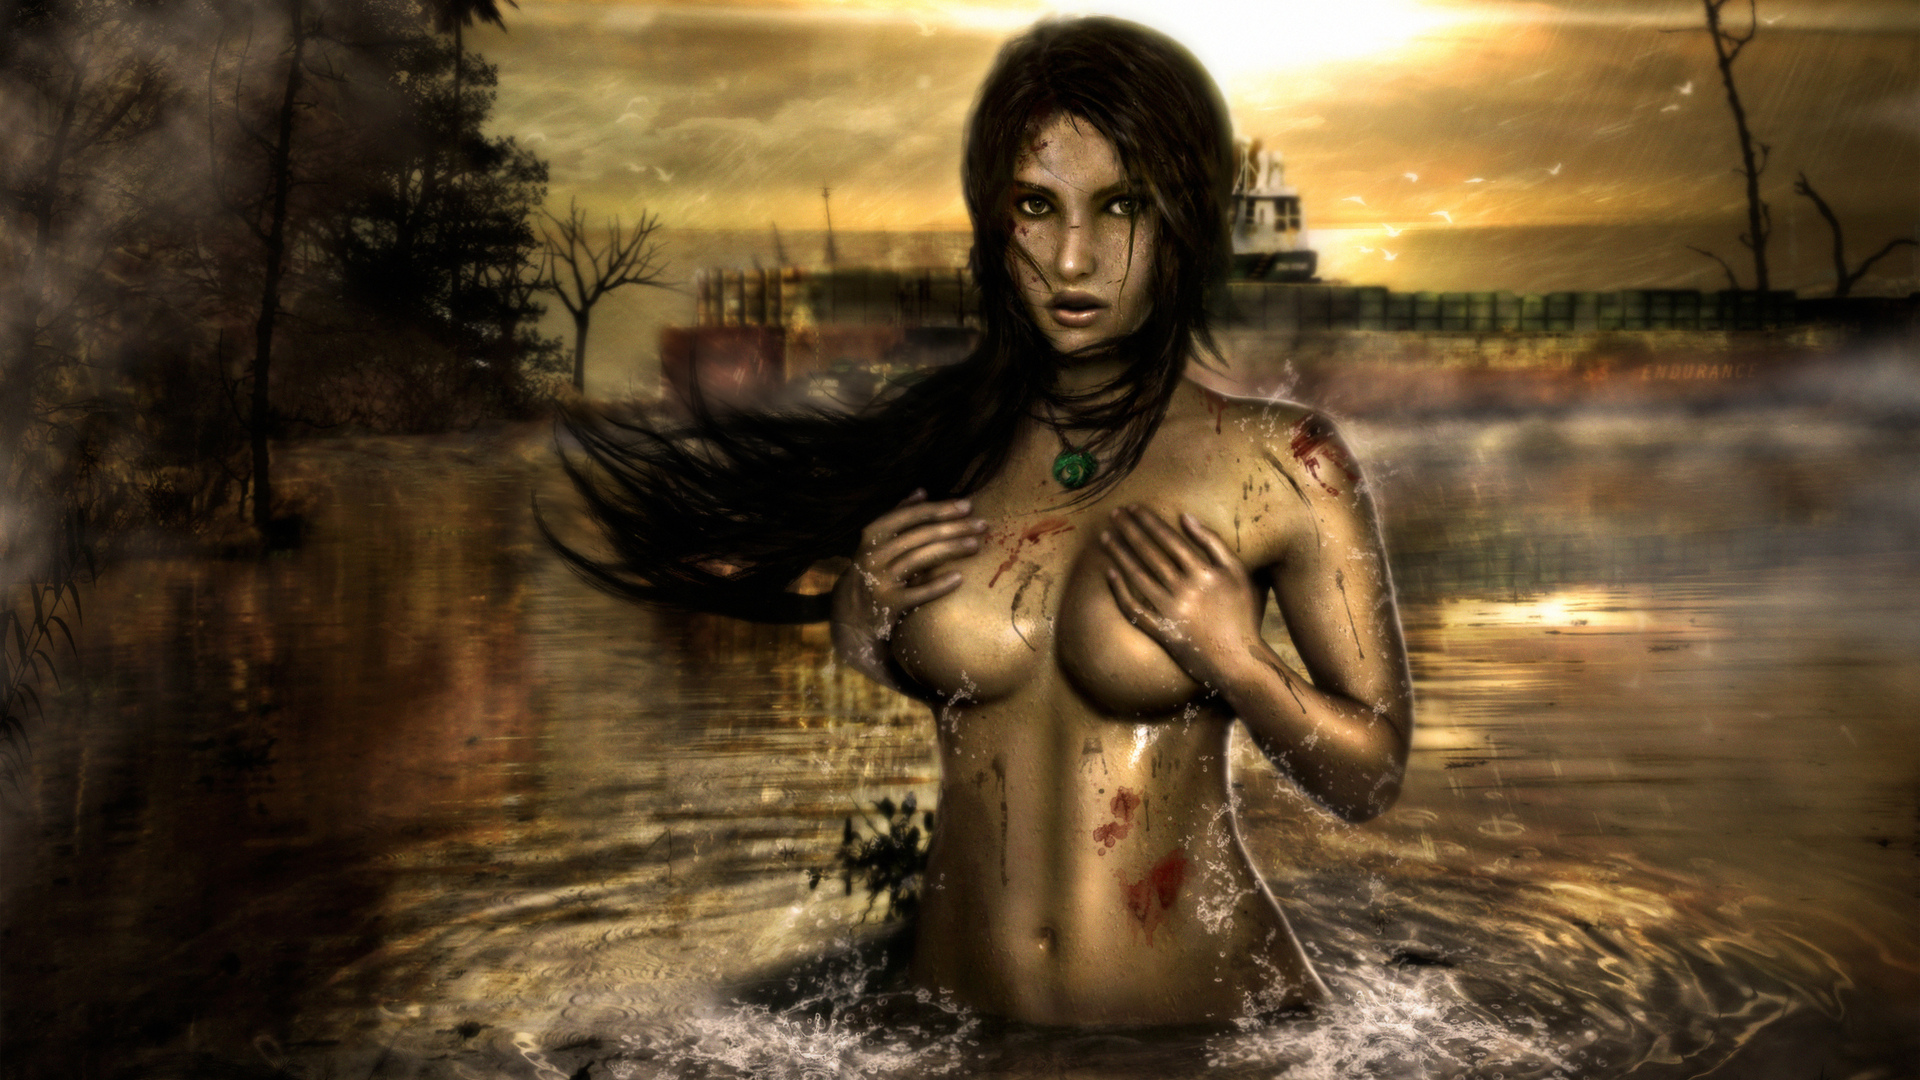 Tomb raider 2013 nude mob xxx fantasy woman